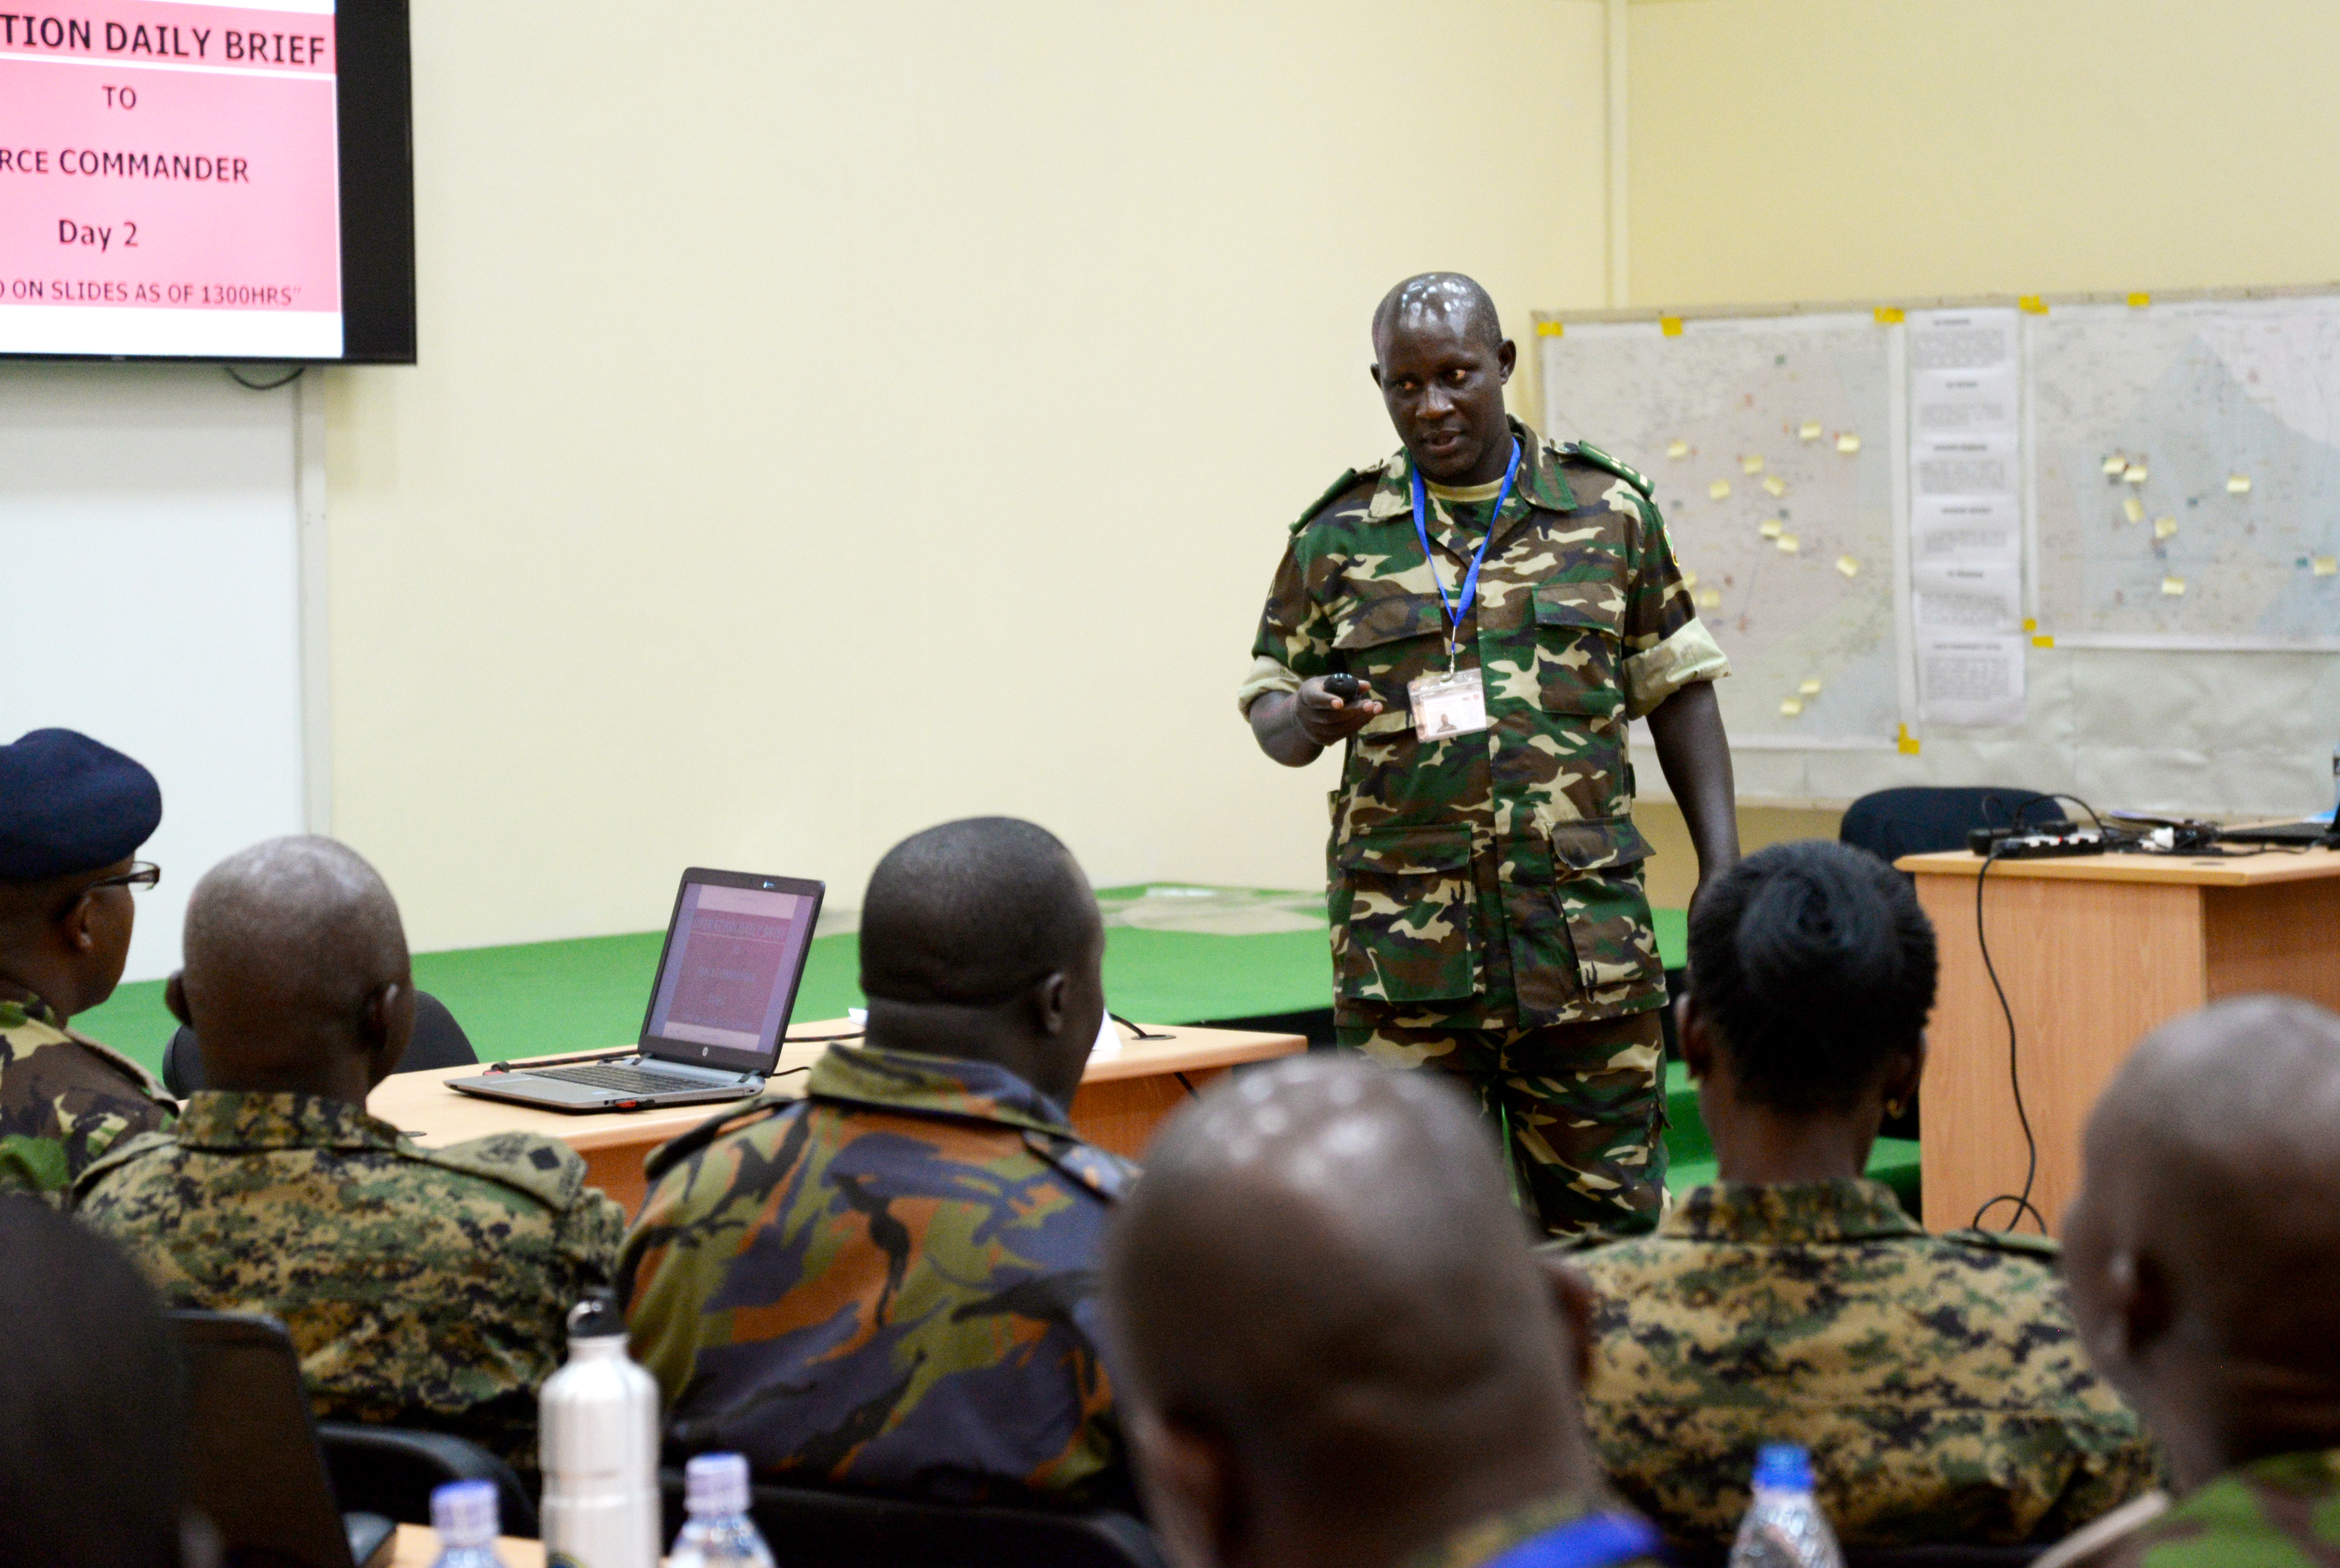 An officer from the Burundi National Defence Force briefs his staff as acting commander for a simulated scenario March 1, 2016, during an exercise to complete a staff officers course in Nairobi, Kenya. At the beginning of the course, the officers were split into six main directorates necessary for successful military operations: logistics and personnel, intelligence, public information, civil affairs, military operations, and command leadership. (U.S. Air Force photo by Staff Sgt. Kate Thornton)